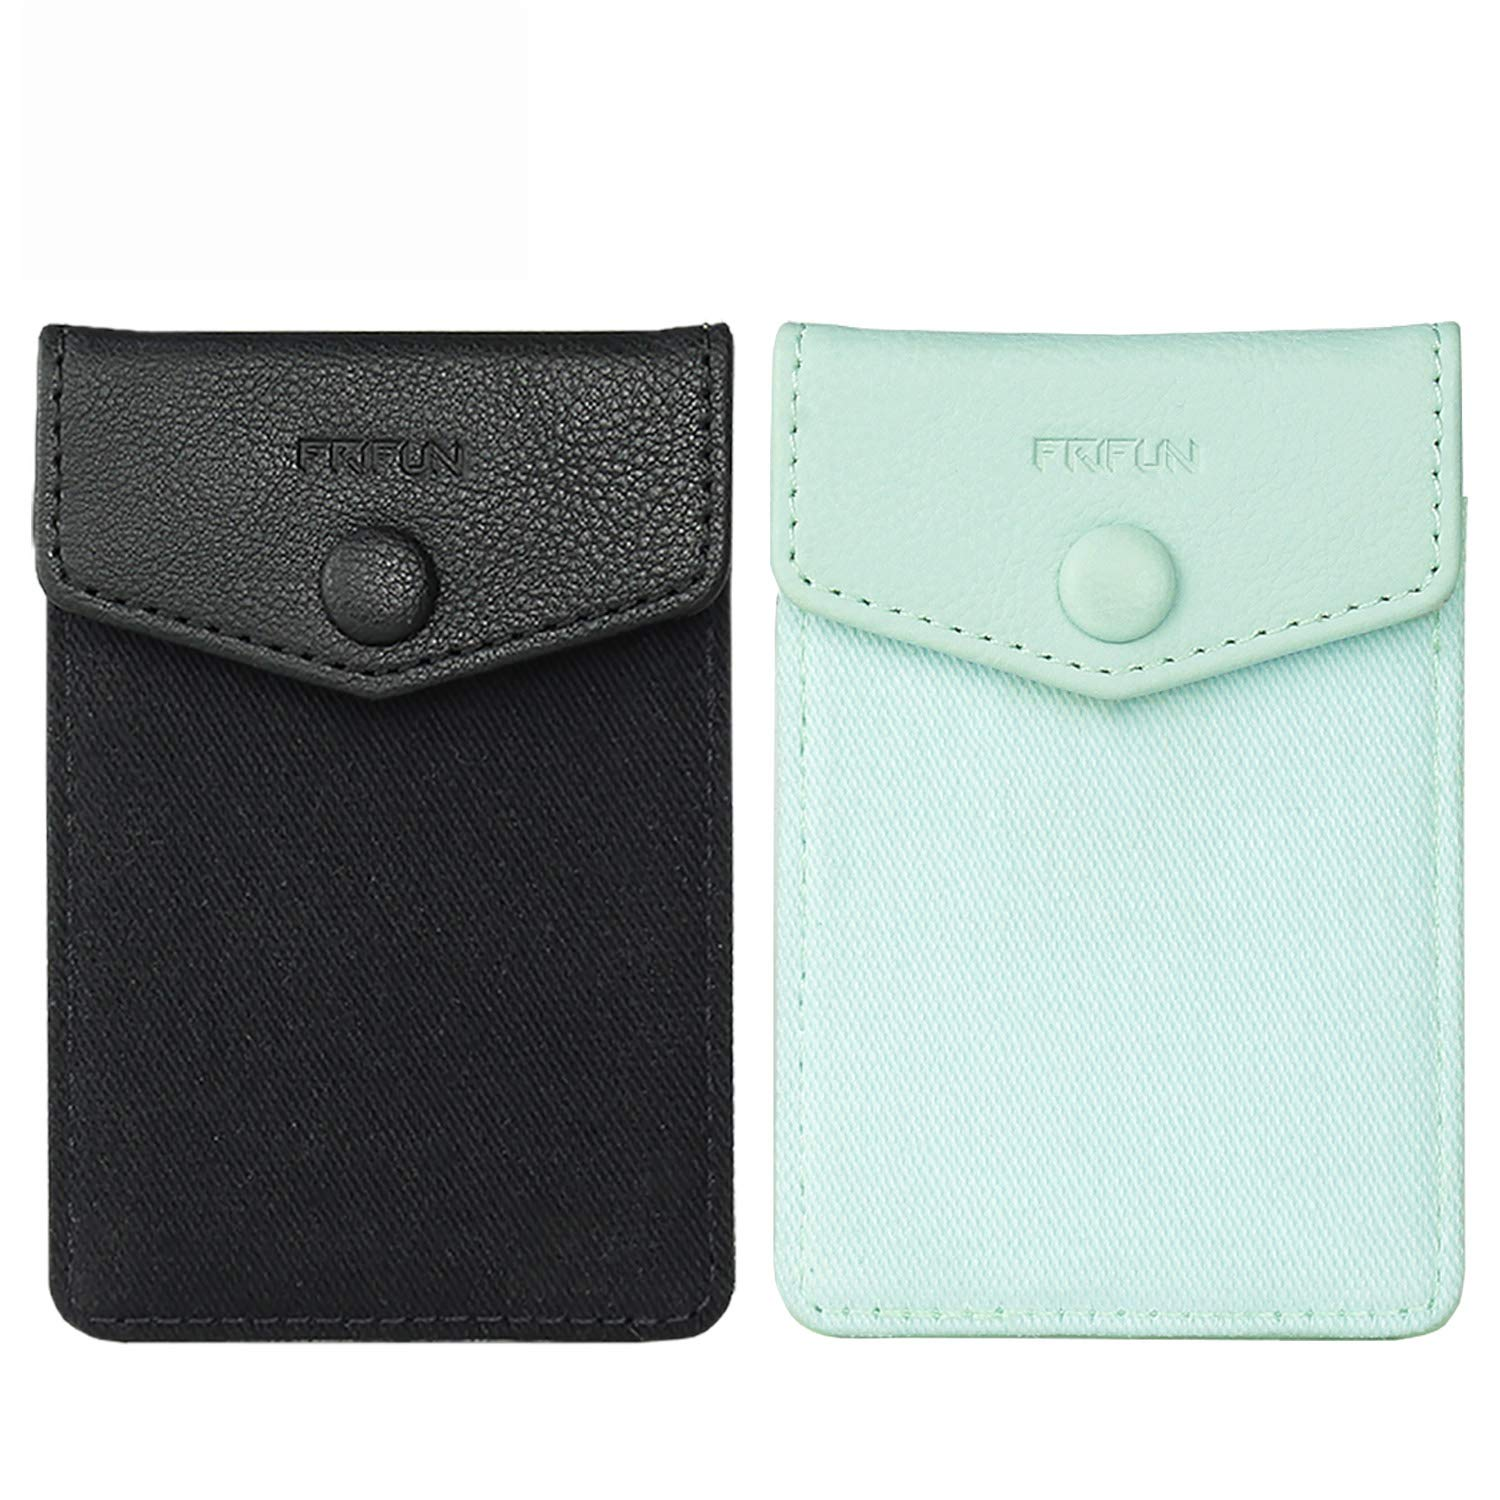 FRIFUN Cell Phone Wallet Ultra-Slim Self Adhesive Credit Card Holder Stick on Wallet Cell Phone Leather Wallet for Smartphones Covers Credit Cards and Cash (Black + Mint) 2 Packs by FRIFUN